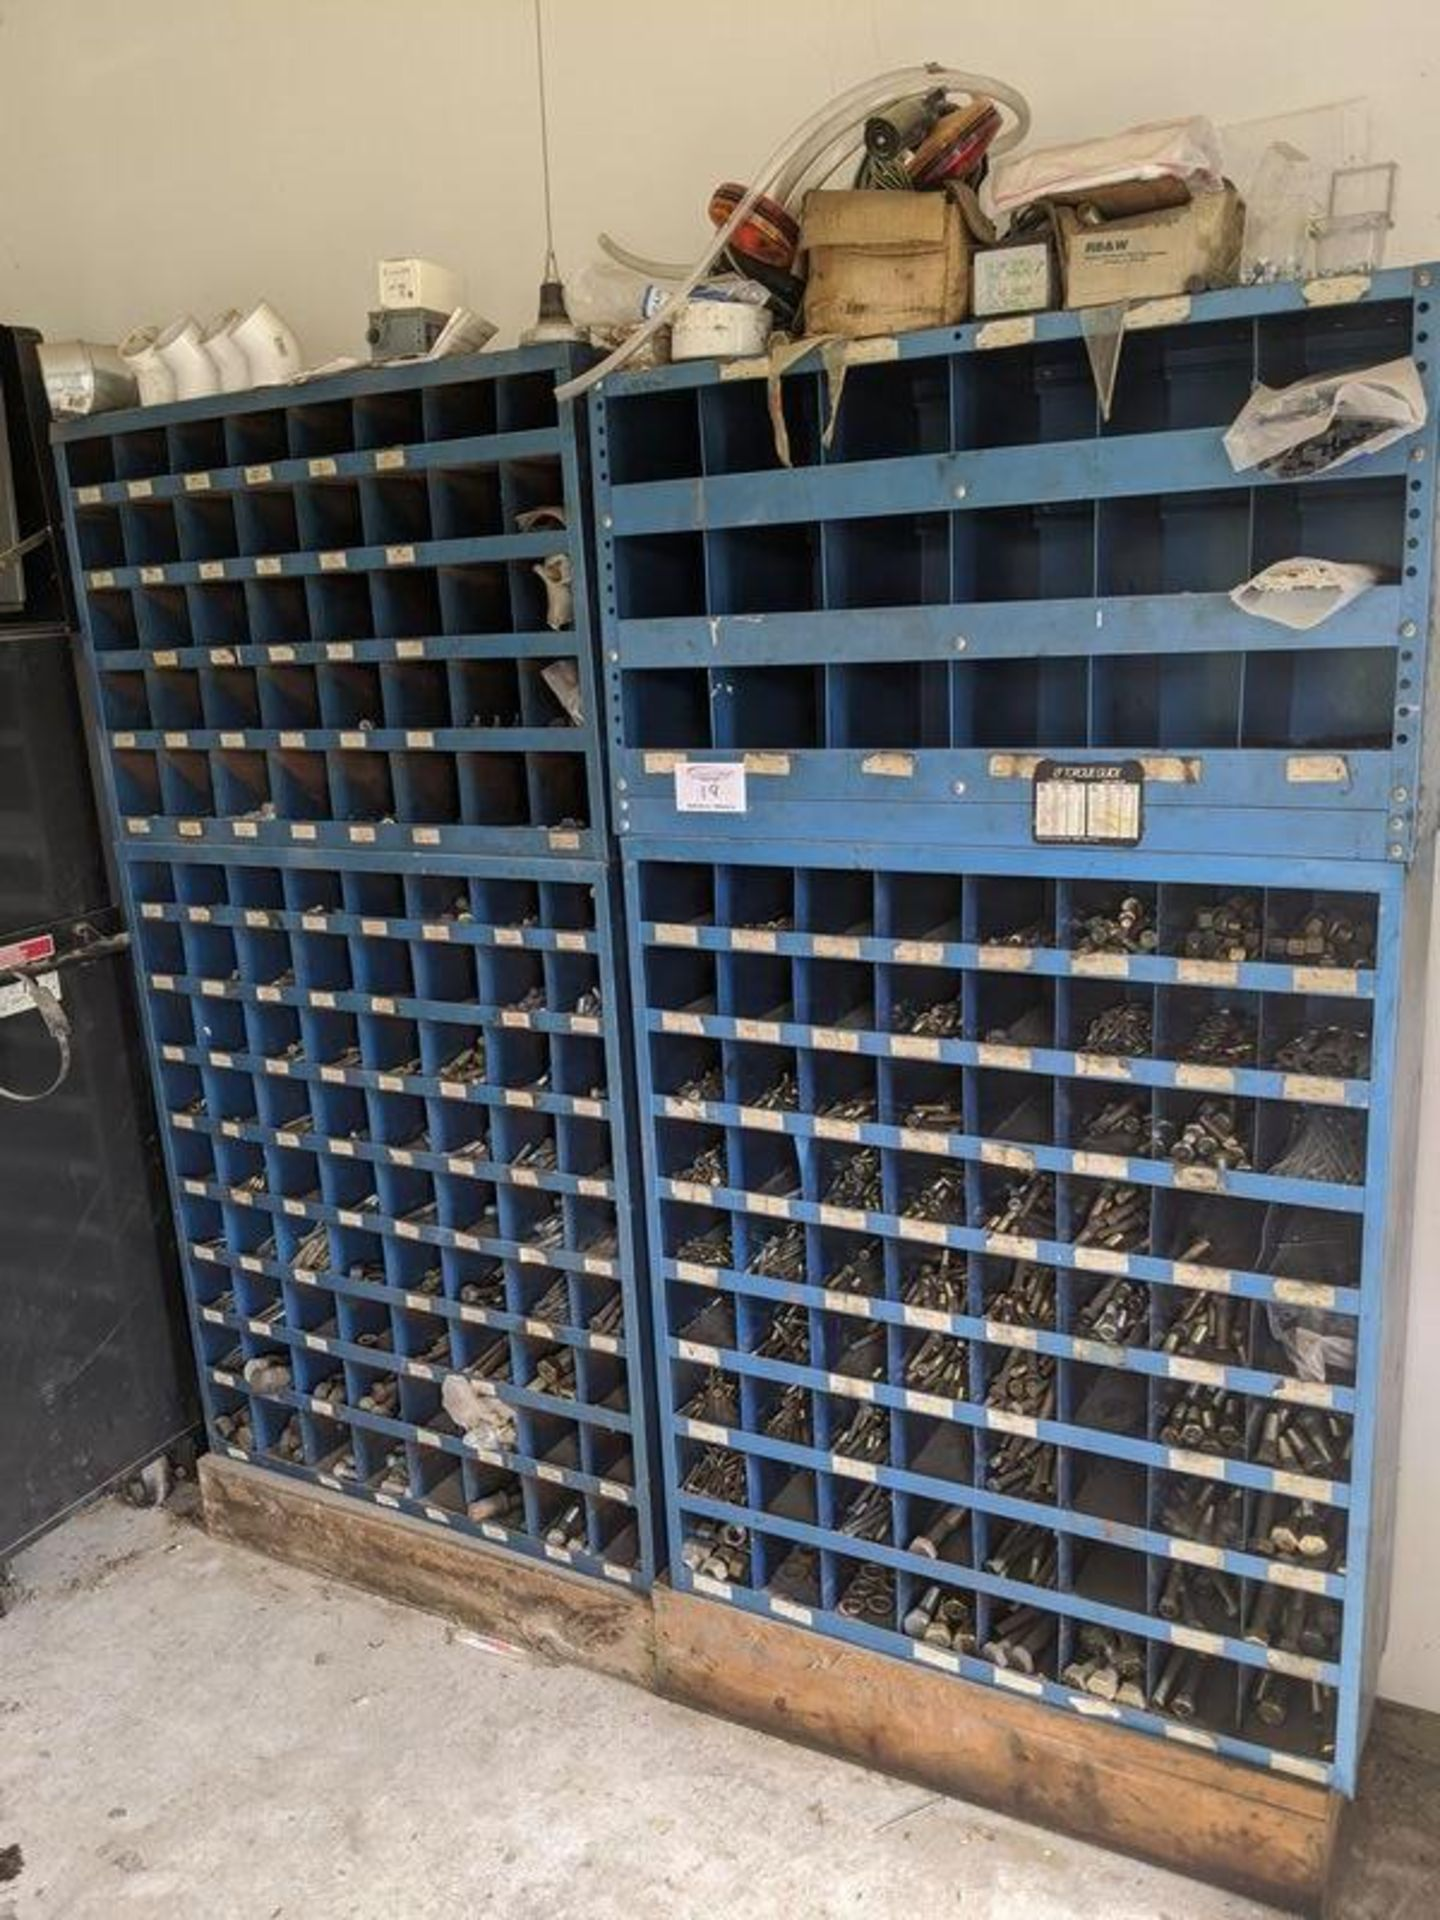 Lot 19 - 4 Sections of Bolt Bins with Contents